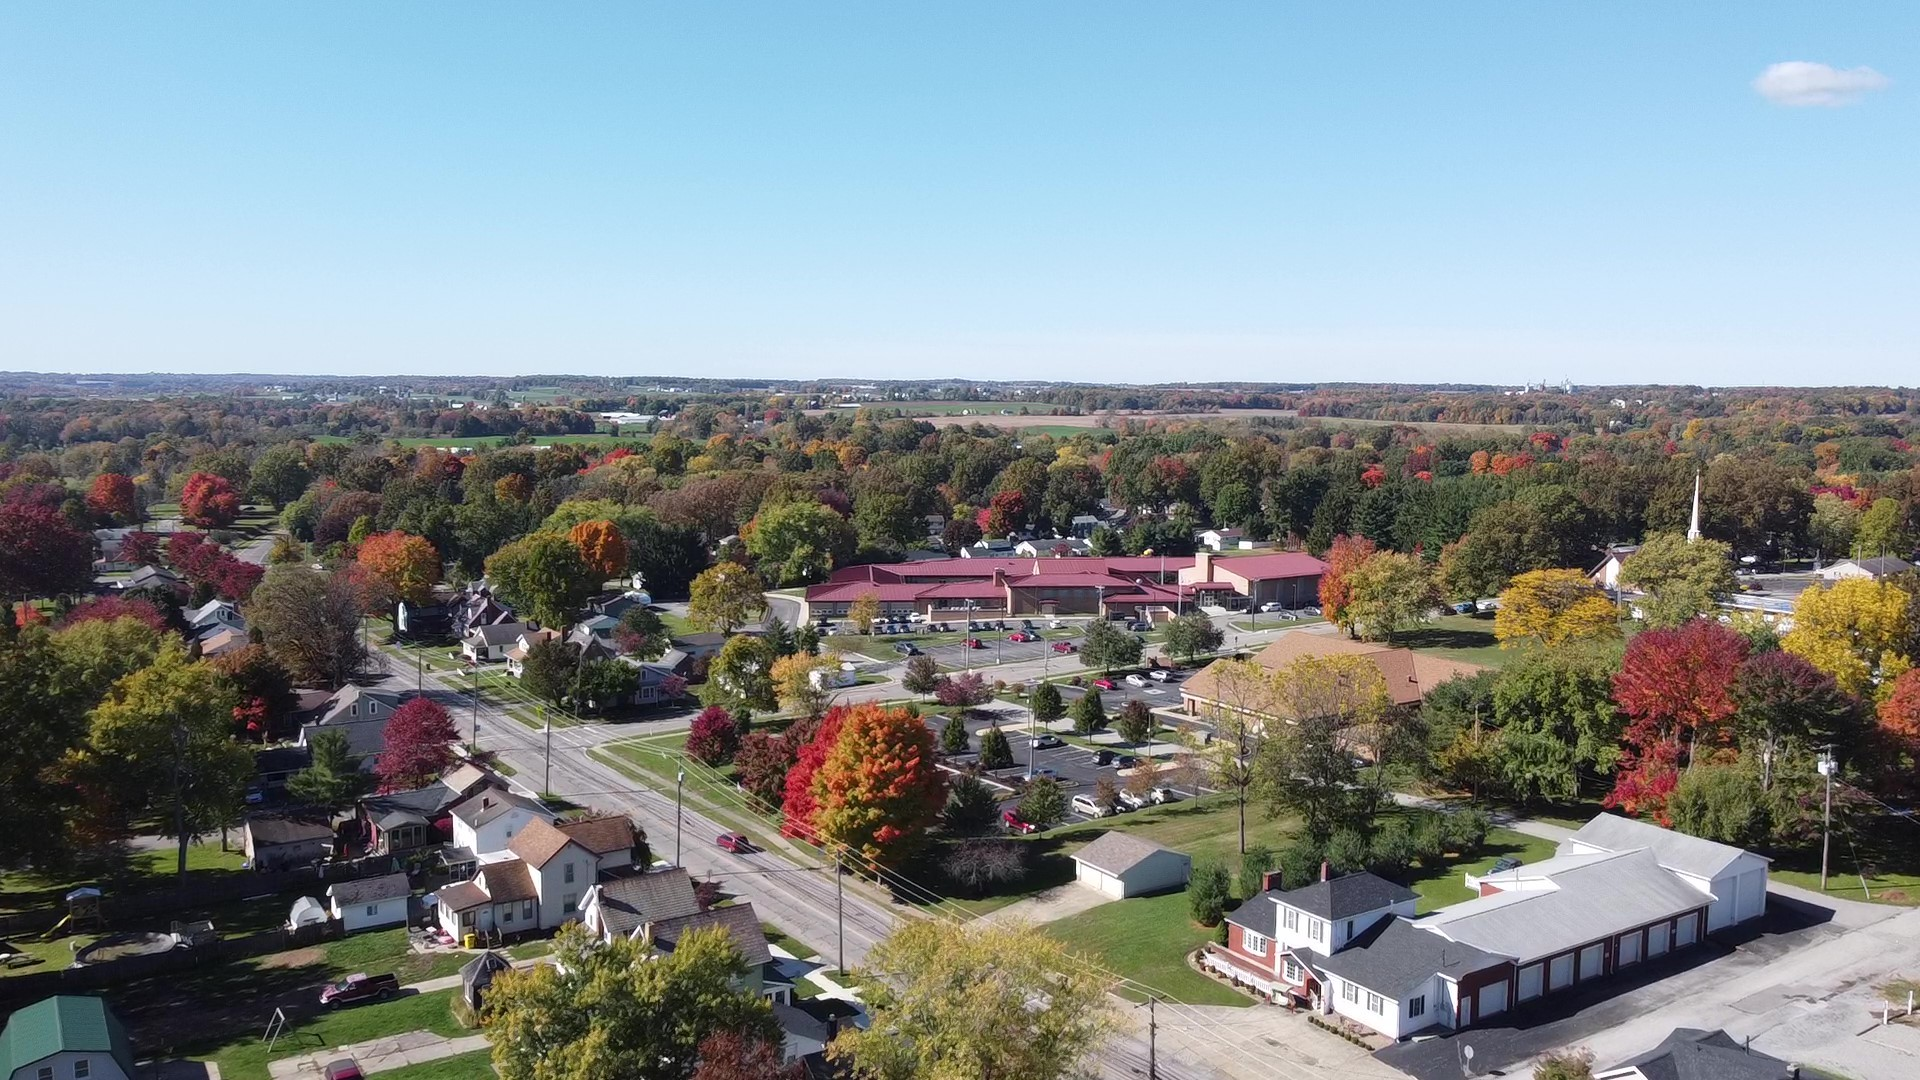 Fall Picture of Dixon from Drone